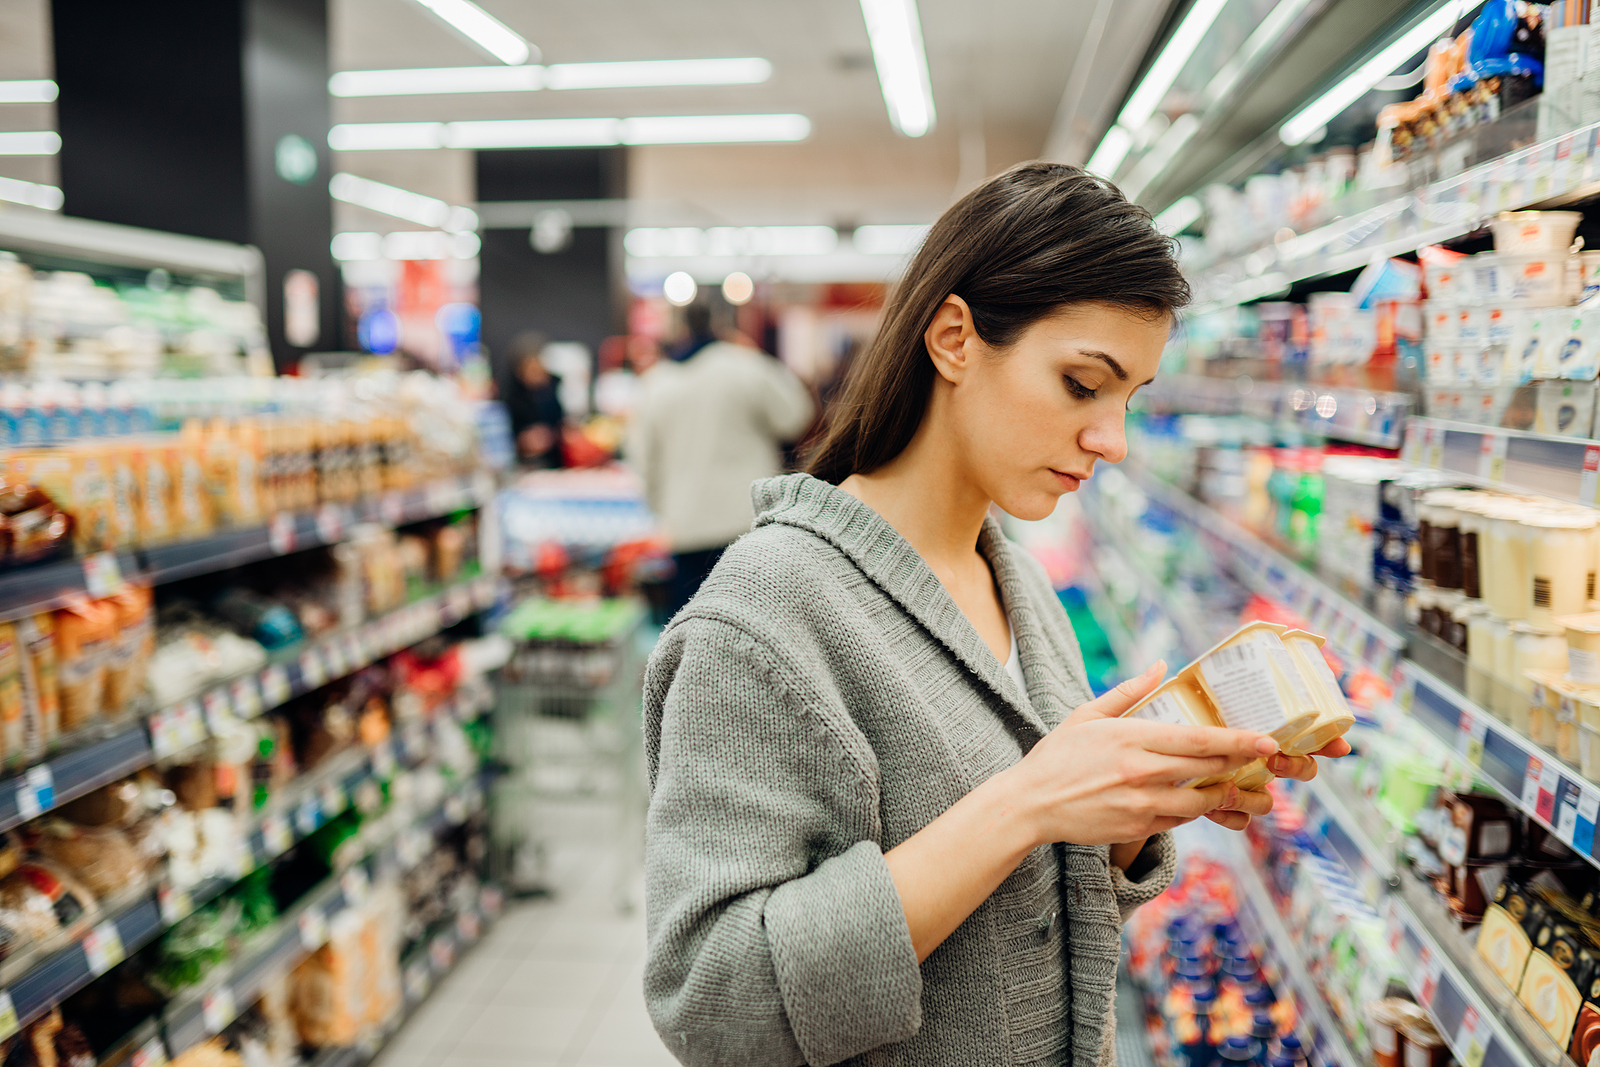 young woman stands in the aisle as she shops for food. She is going over the nutrition facts, and is frustrated that she never knows what foods might be good for her diet. Equipose Teletherapy offers online nutrition counseling in chicago, il, intuitive eating counseling in chicago, il, and more. Contact us today to get in contact with an online nutritionist in Illinois